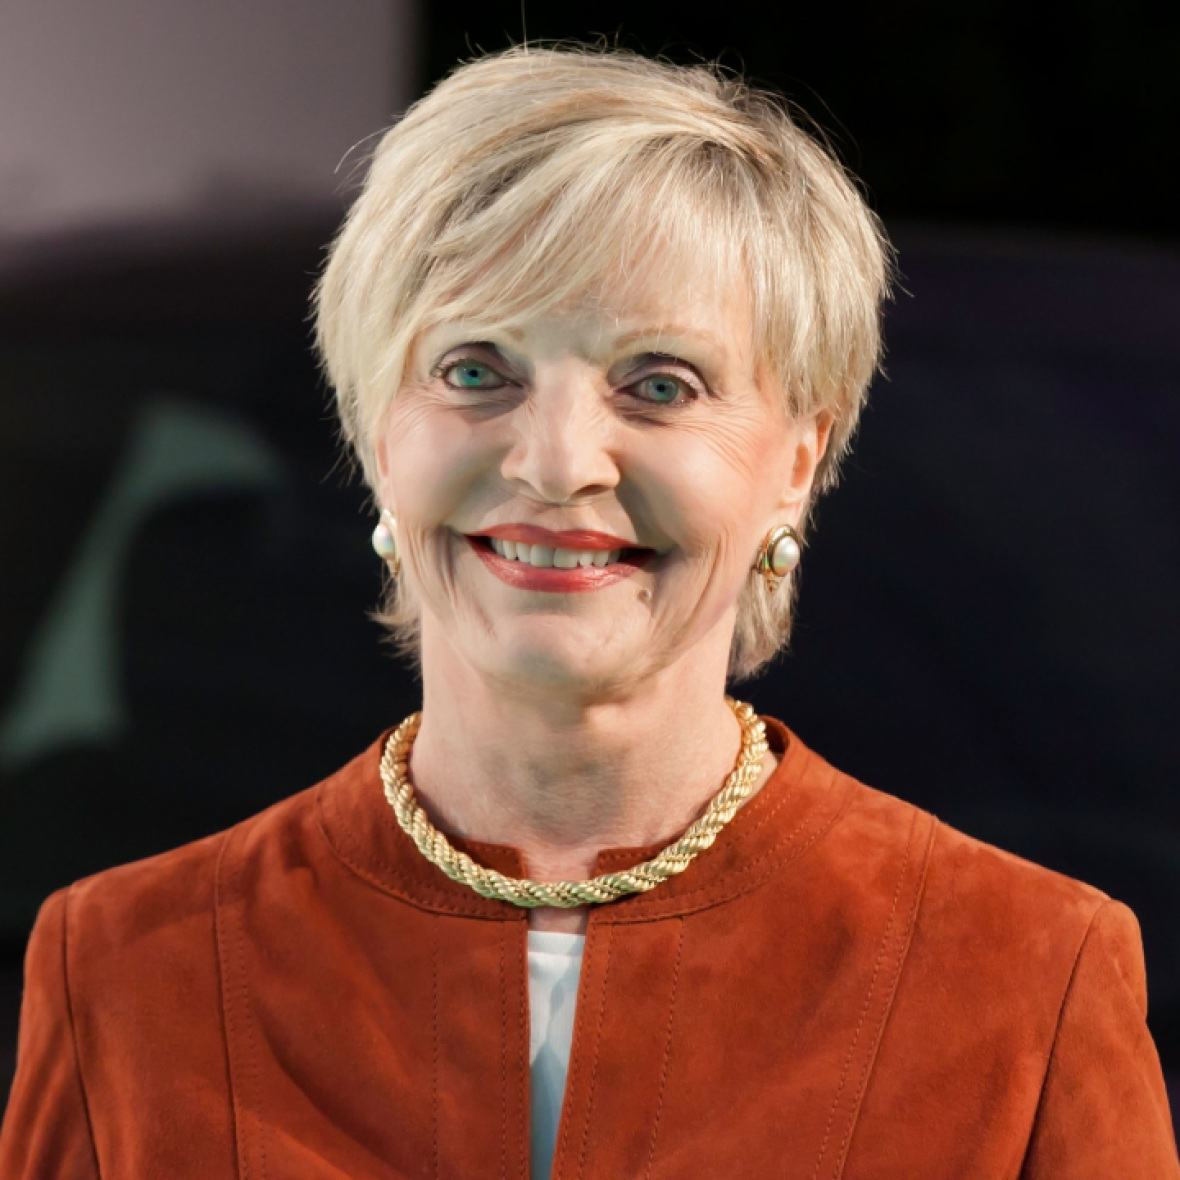 florence henderson getty images